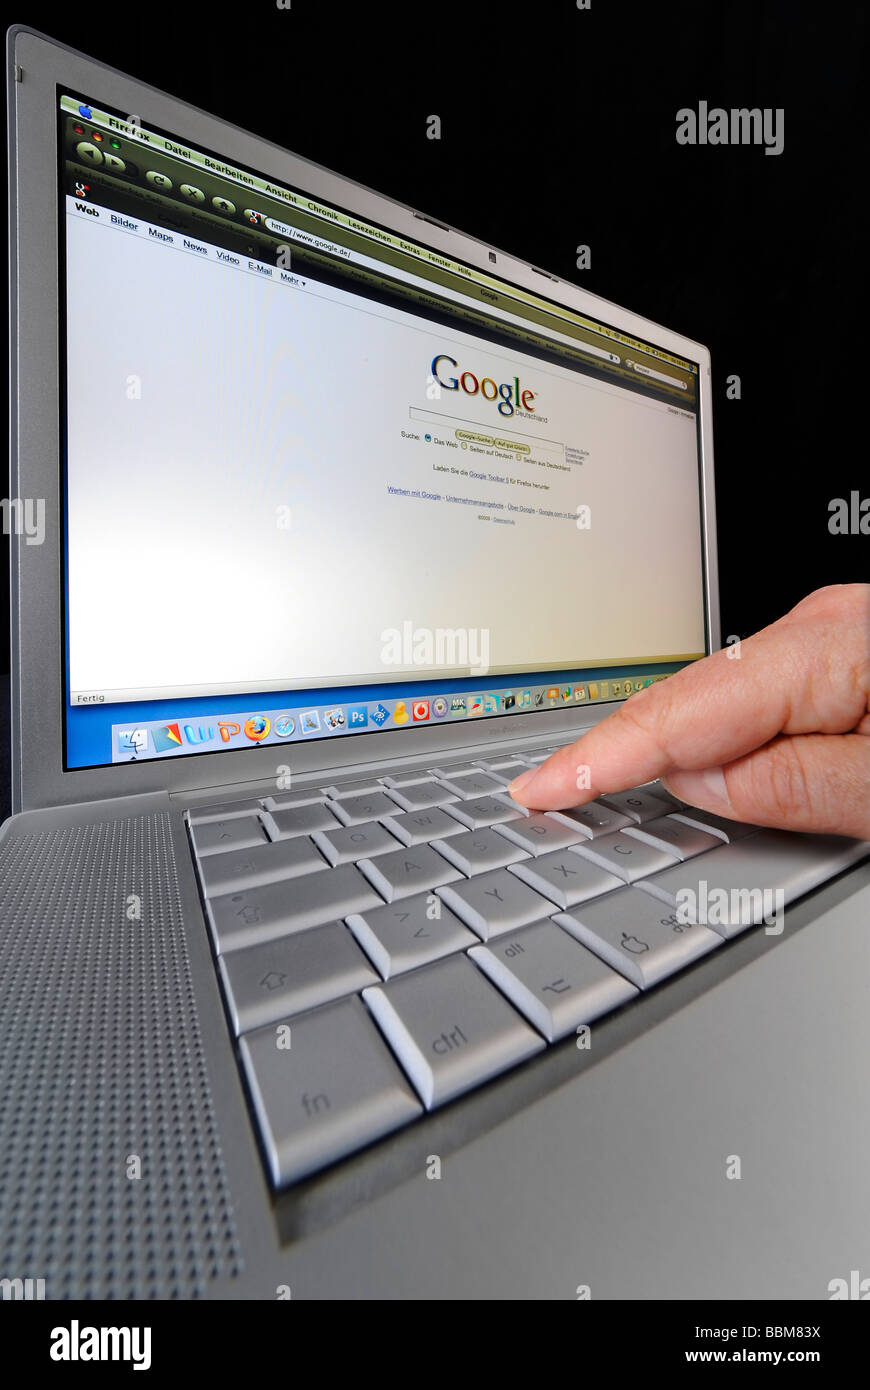 Google search engine displayed on an Apple MacBook Pro Stock Photo